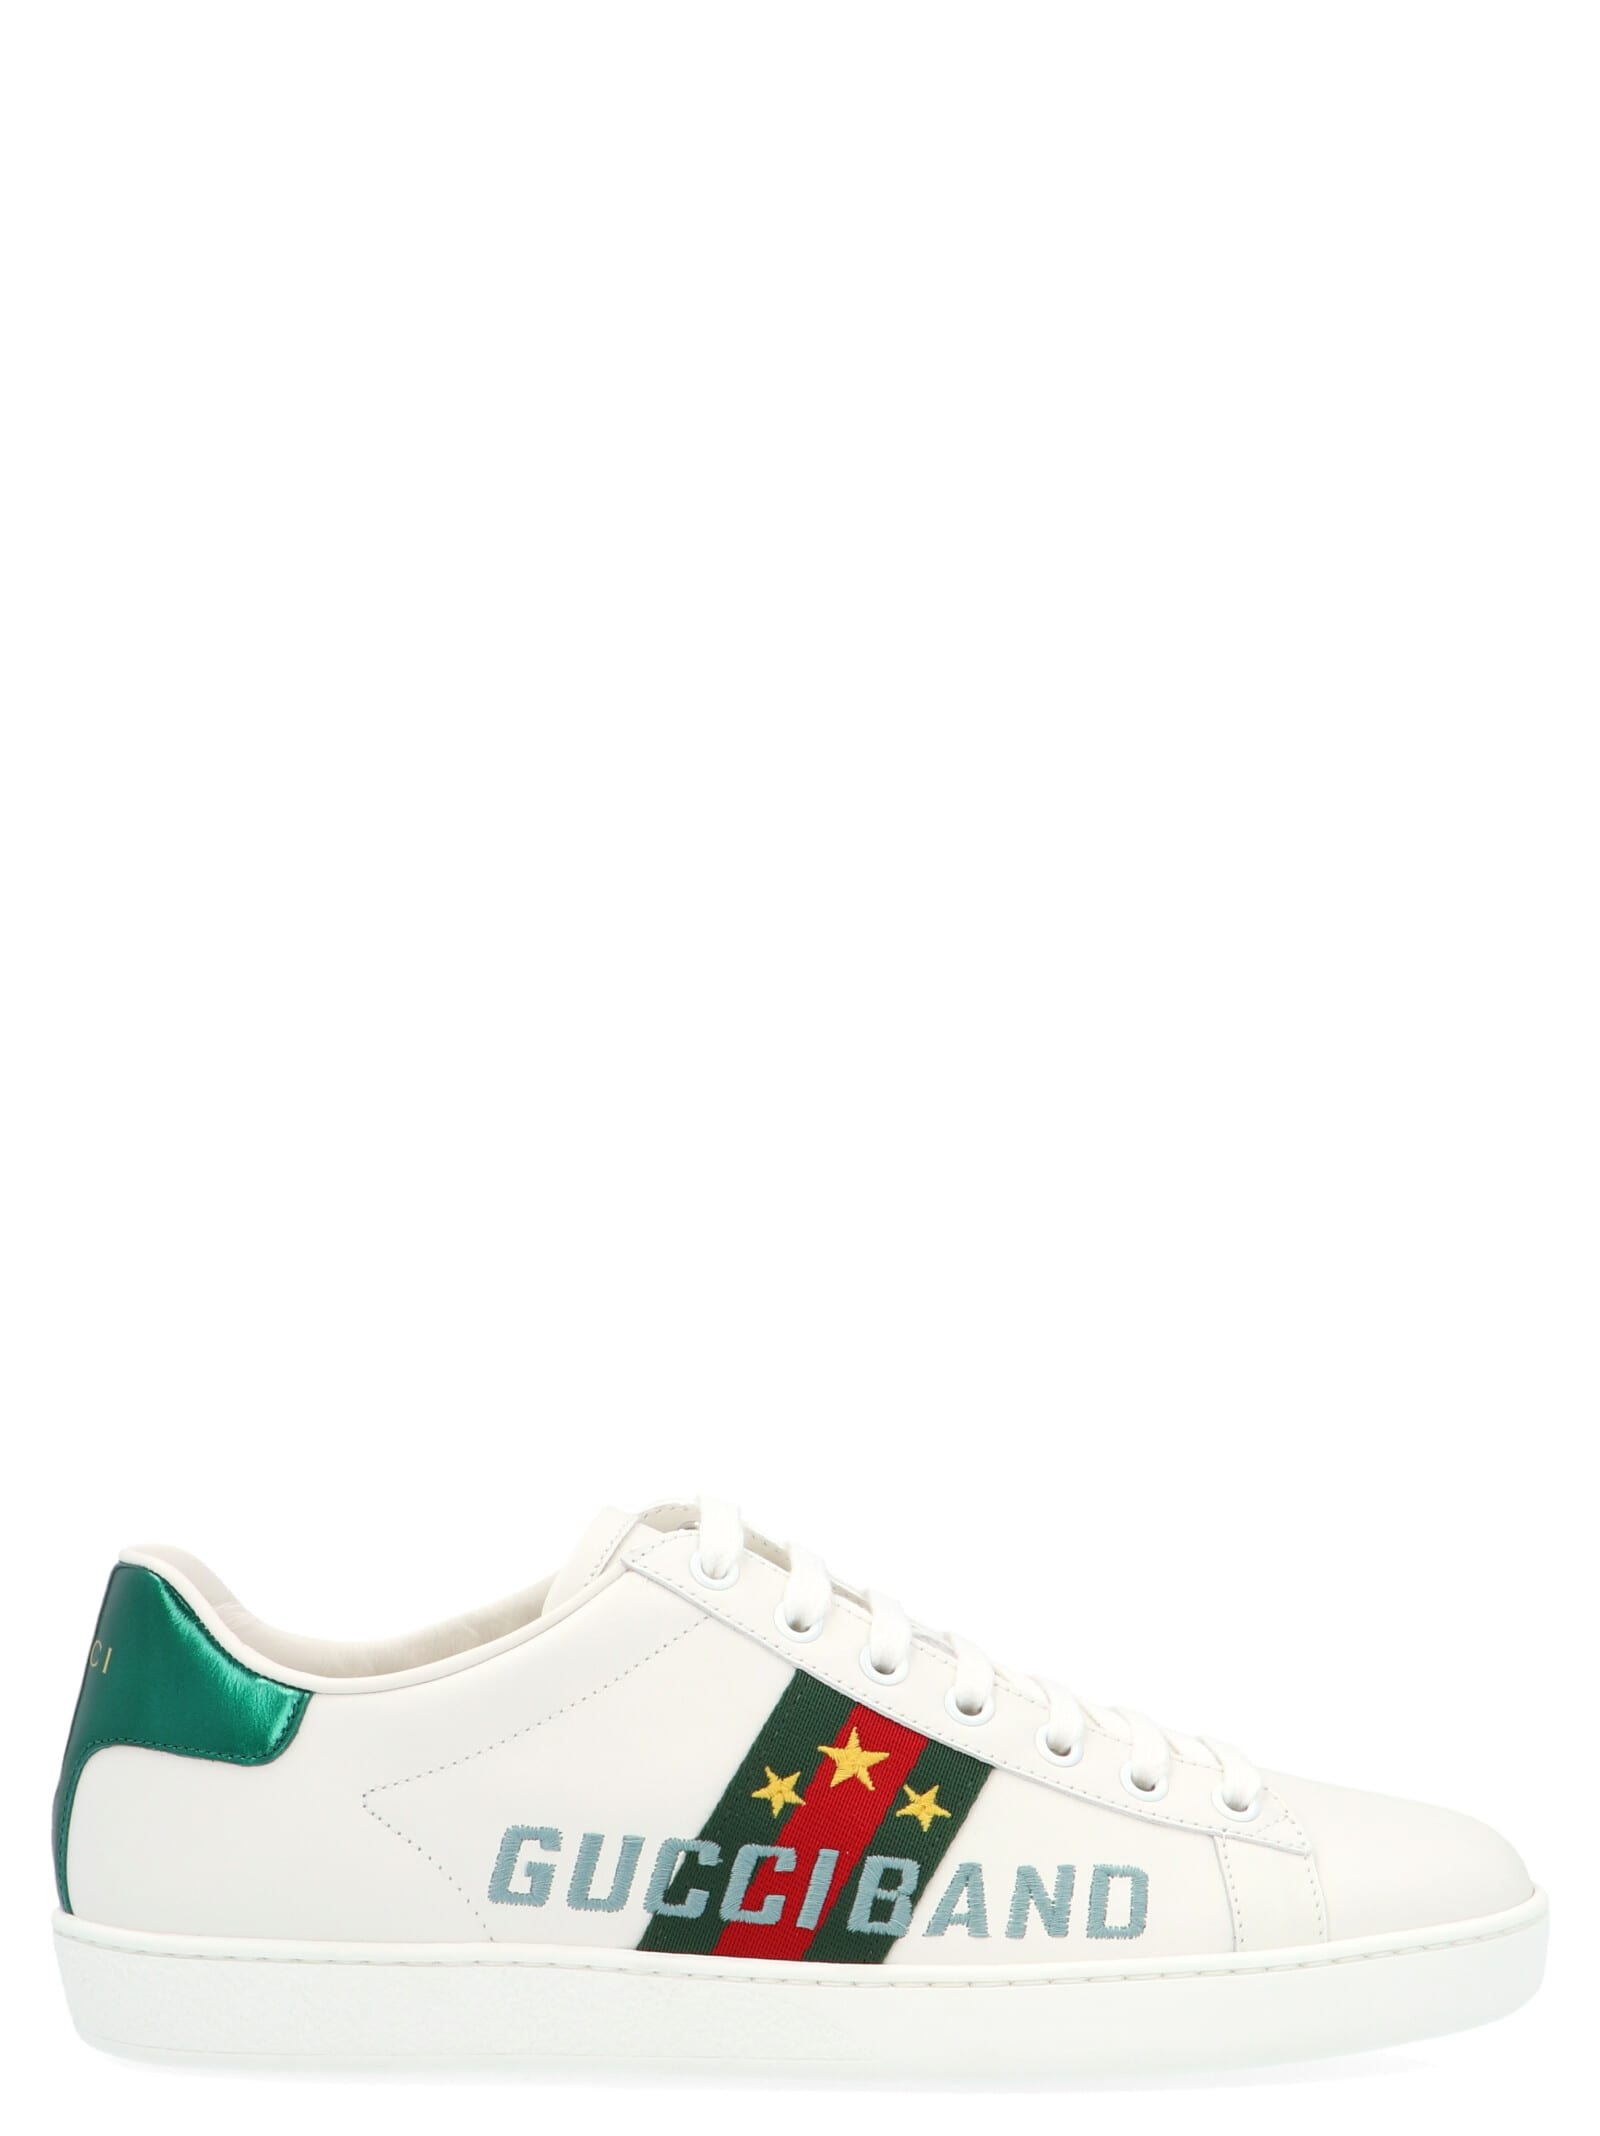 Gucci new Ace Shoes